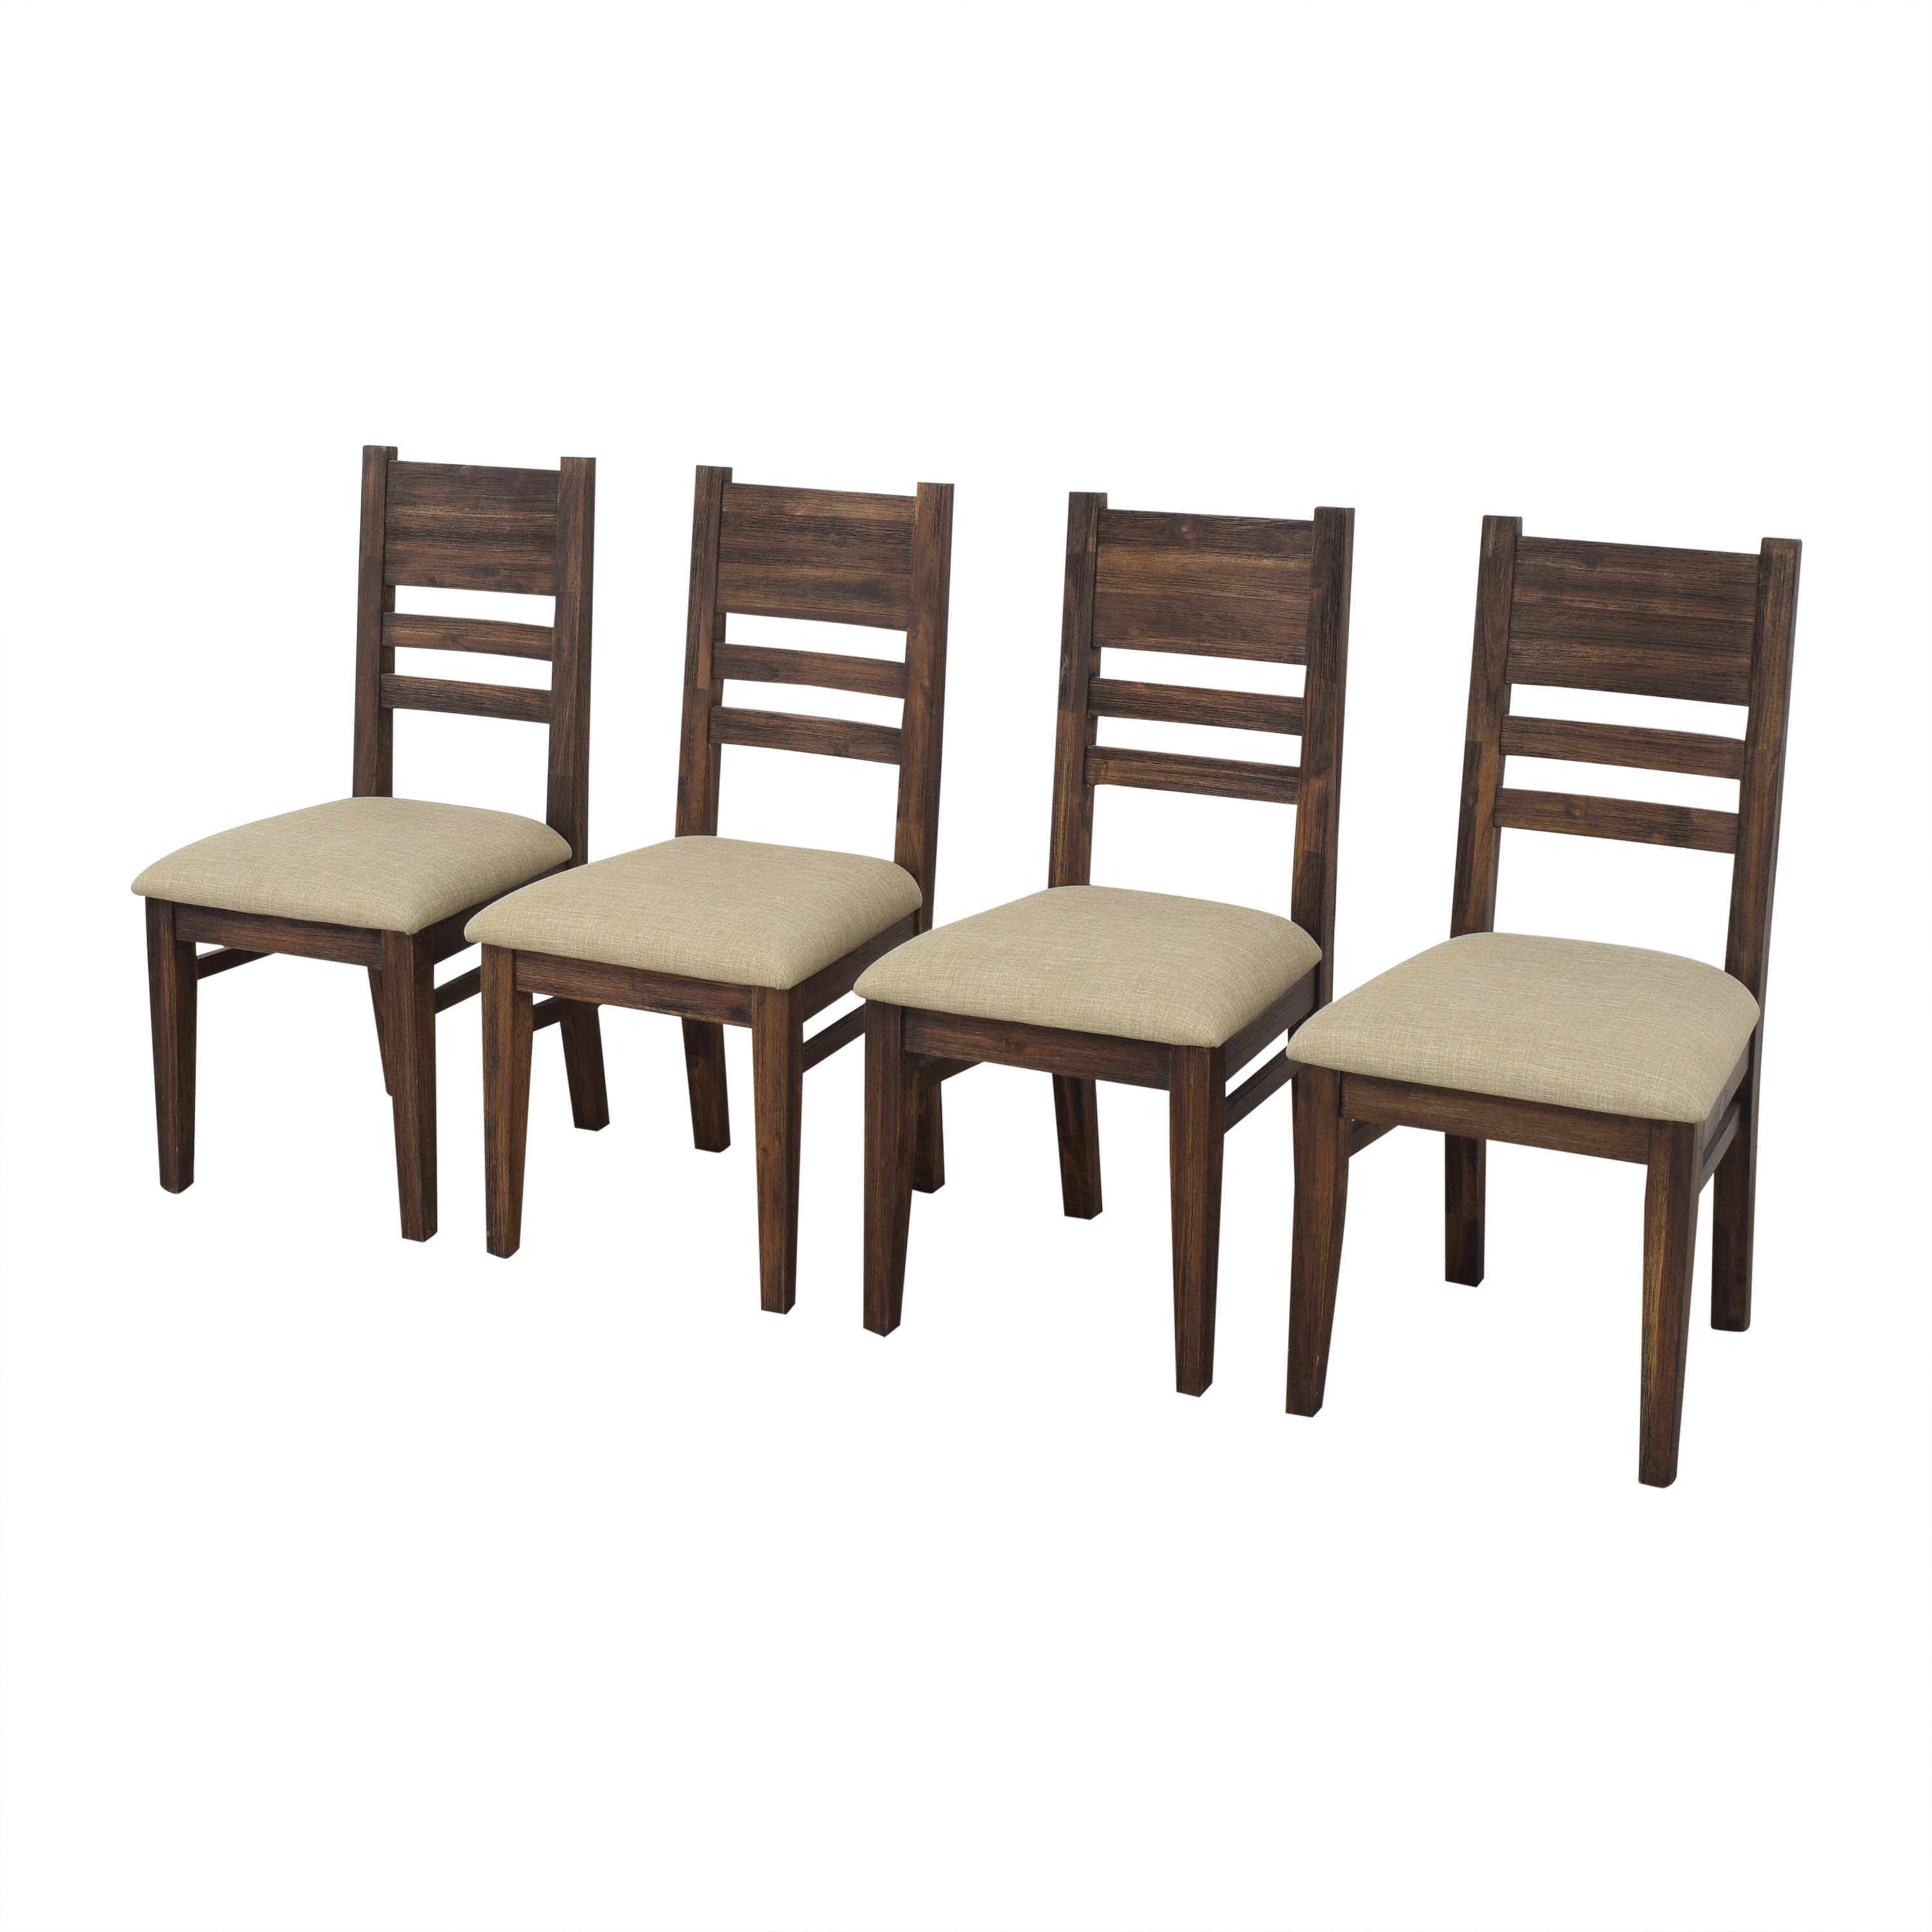 Macy's Macy's Avondale Dining Side Chairs brown & beige